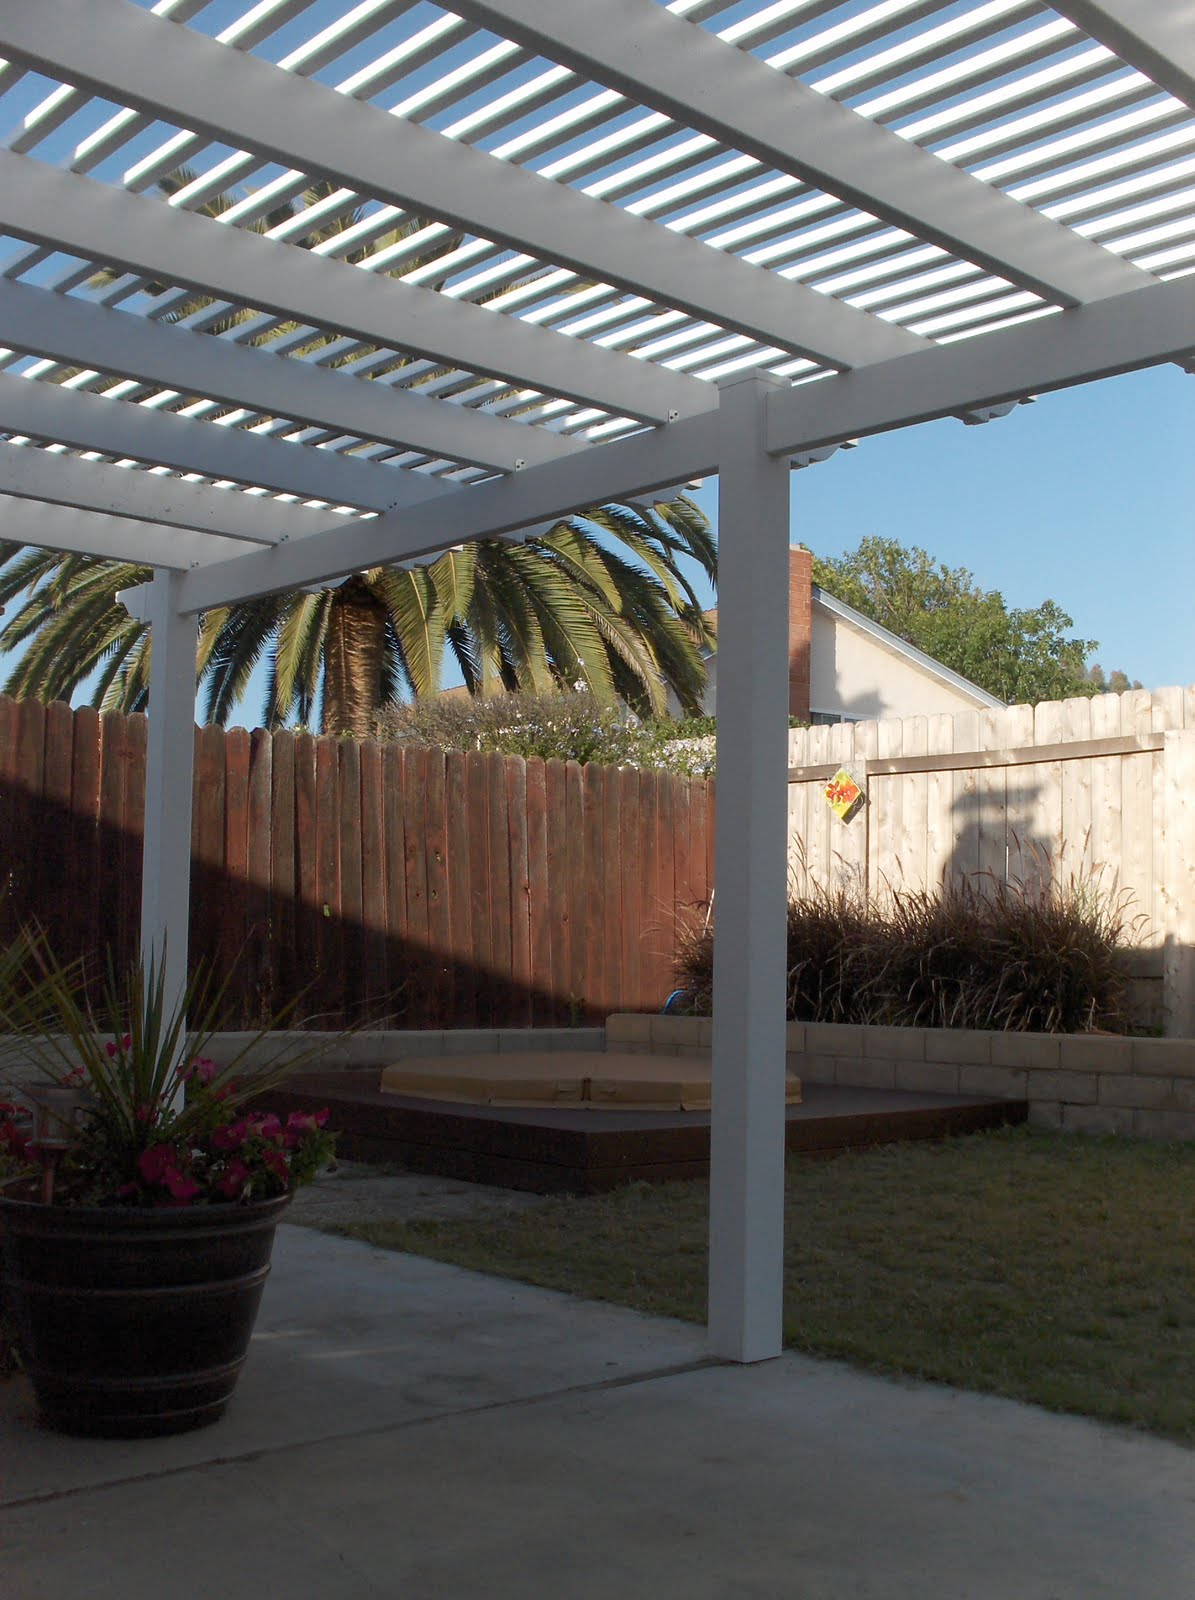 Patio Cover Load Calculator: ProDeck Construction: Before And After: Deck And Patio Cover